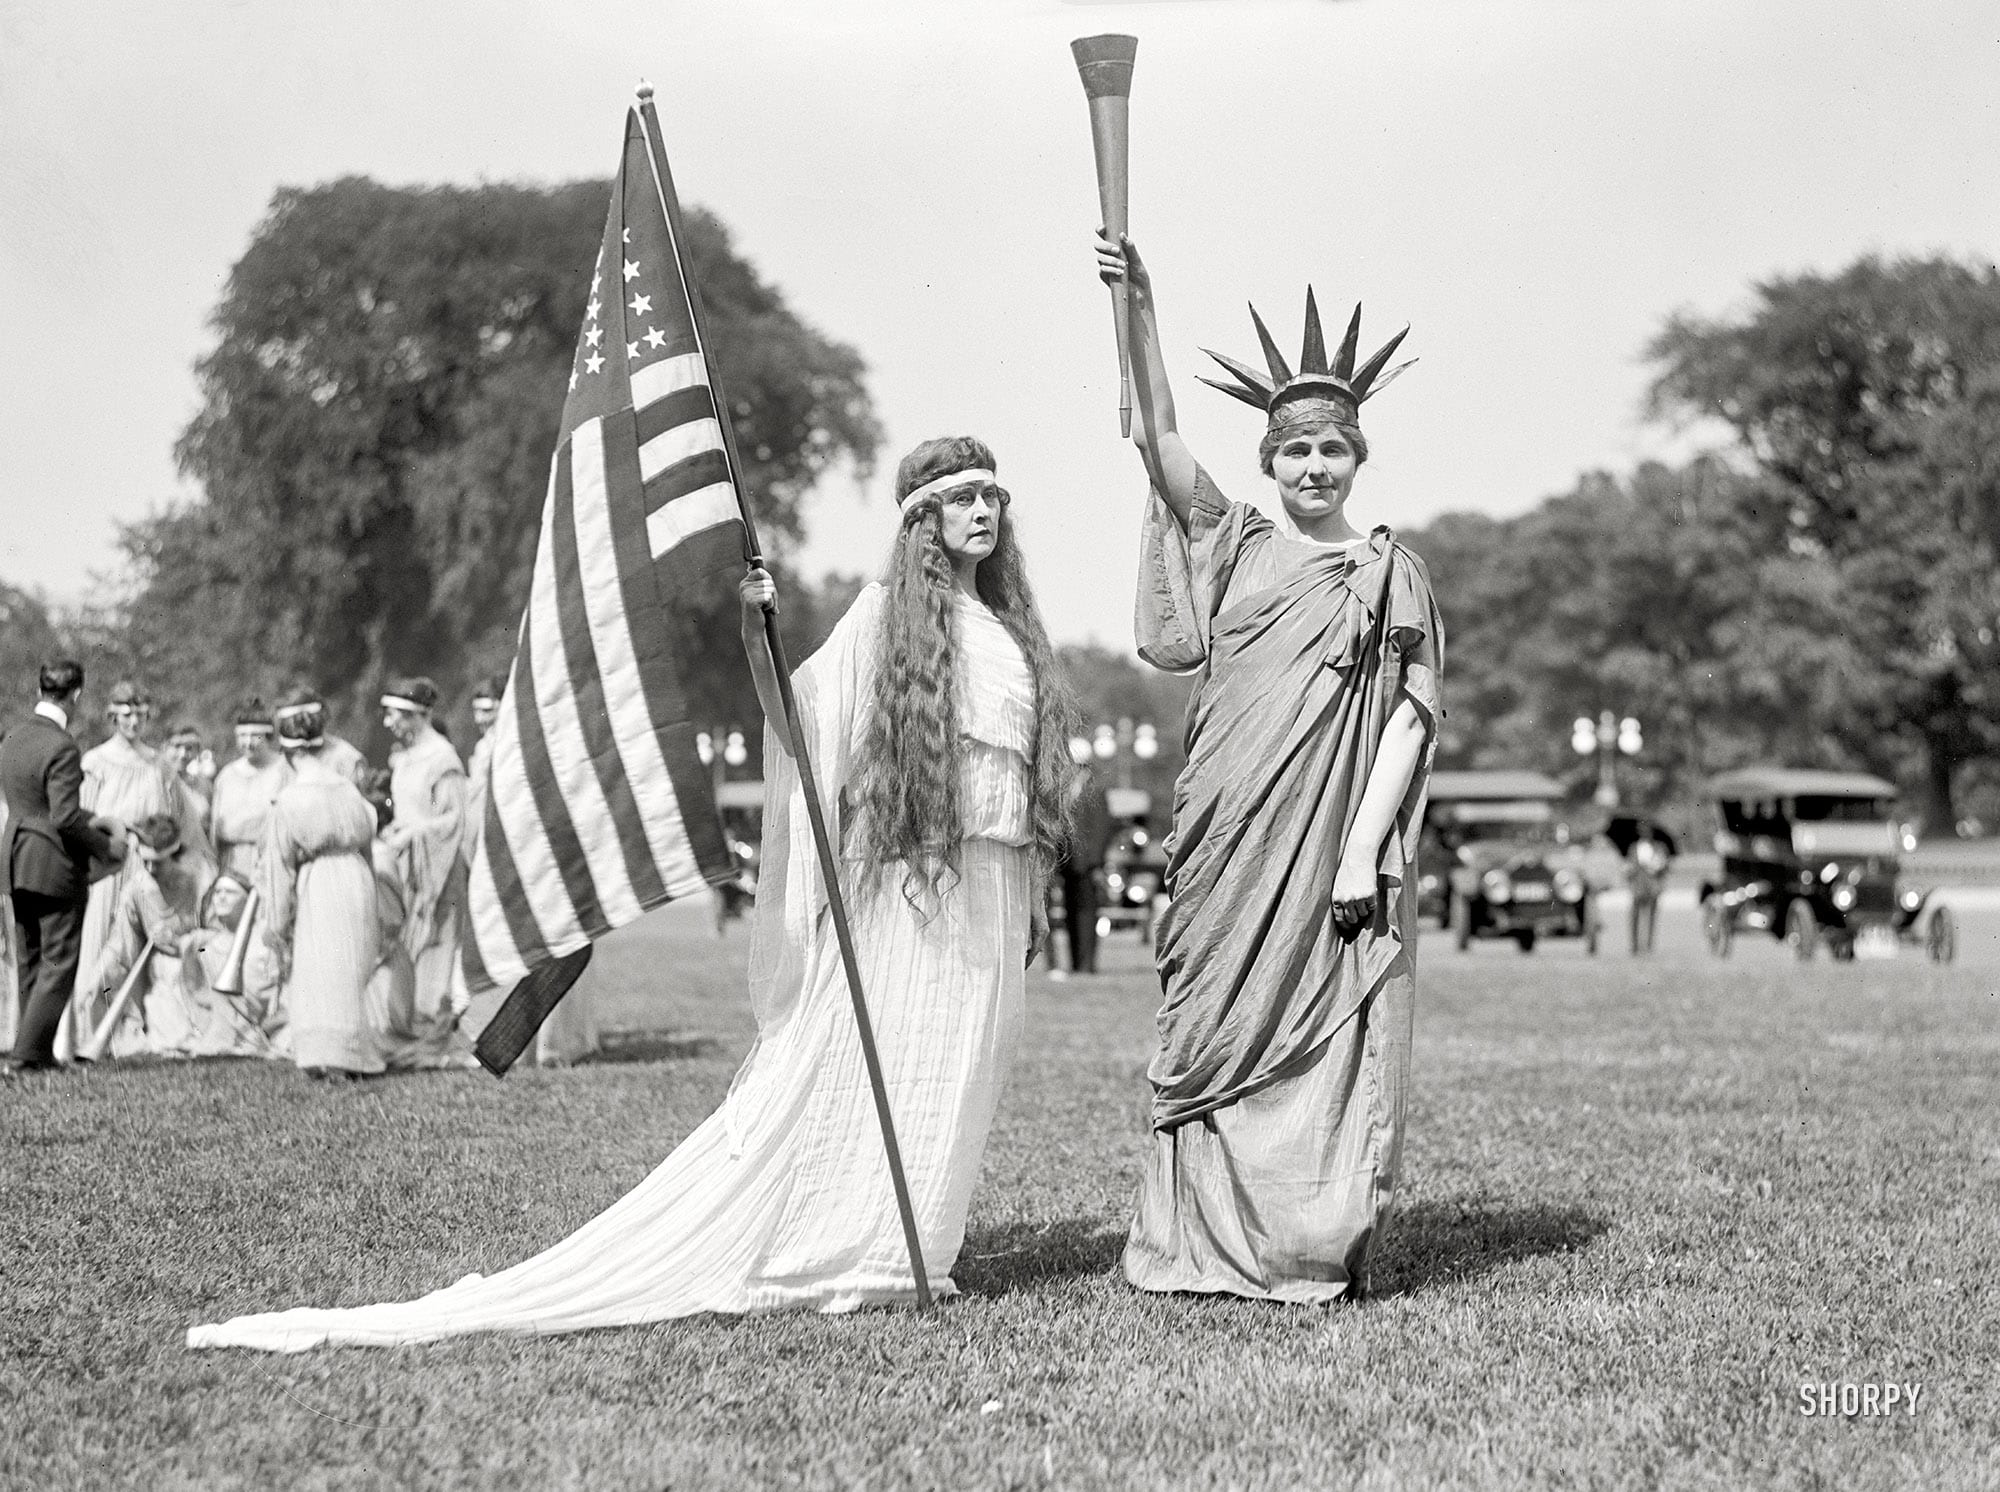 Friday, July 4th, 1919